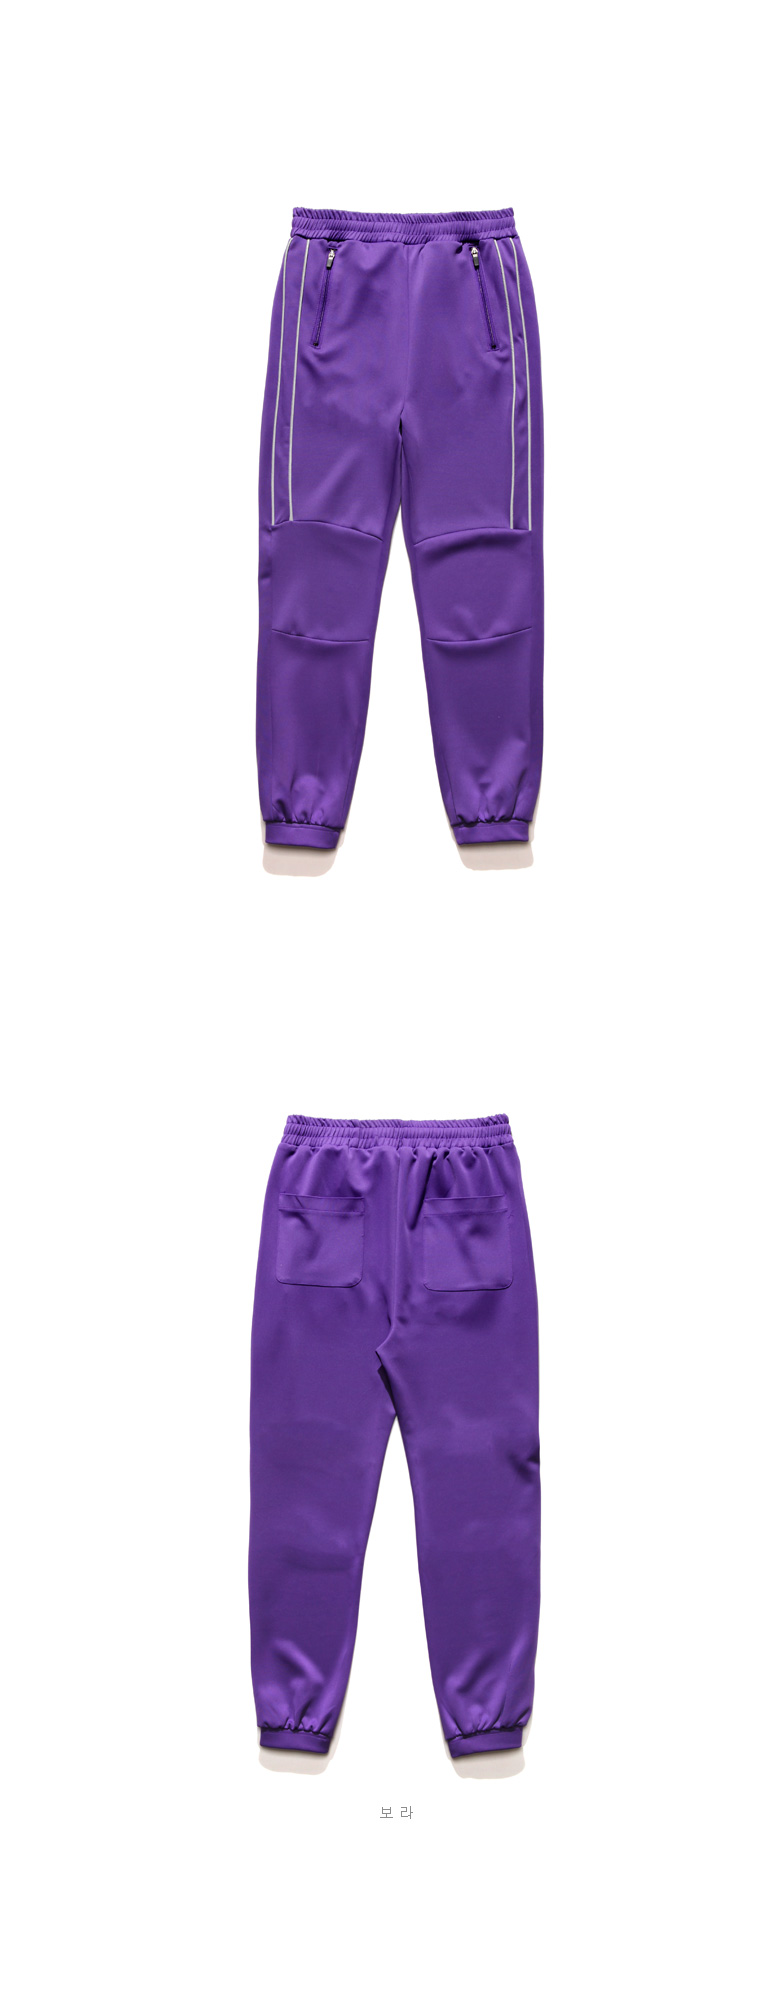 20180509_ps_saint_pants_purple_ms_01.jpg